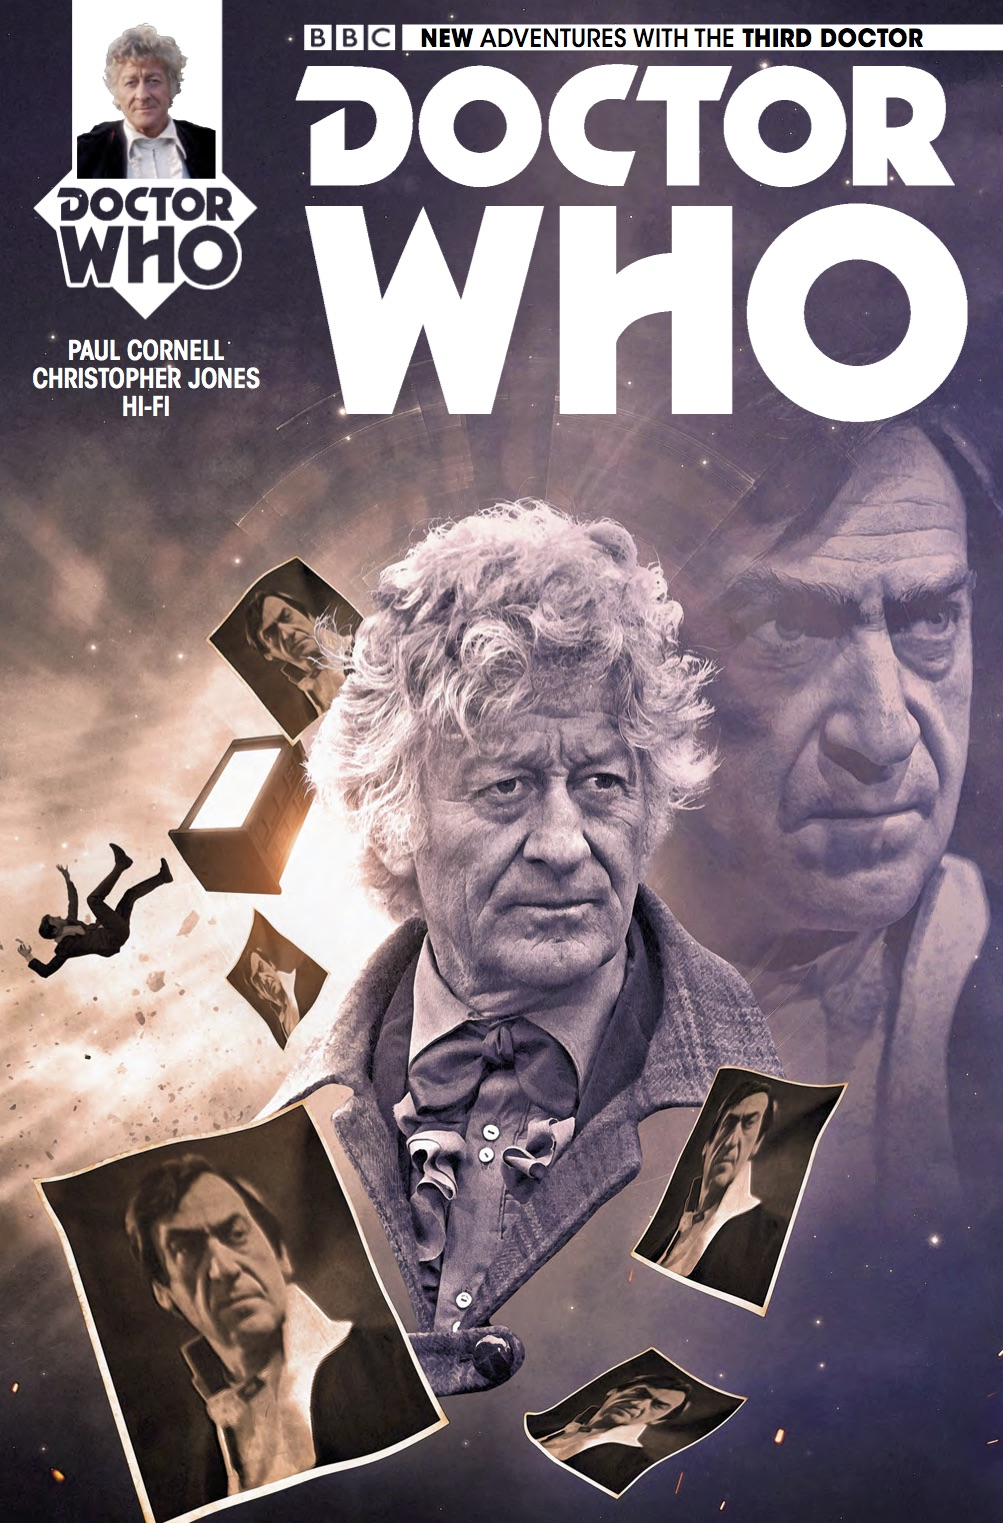 The_Third_Doctor_05_Cover_B (Credit: Titan)